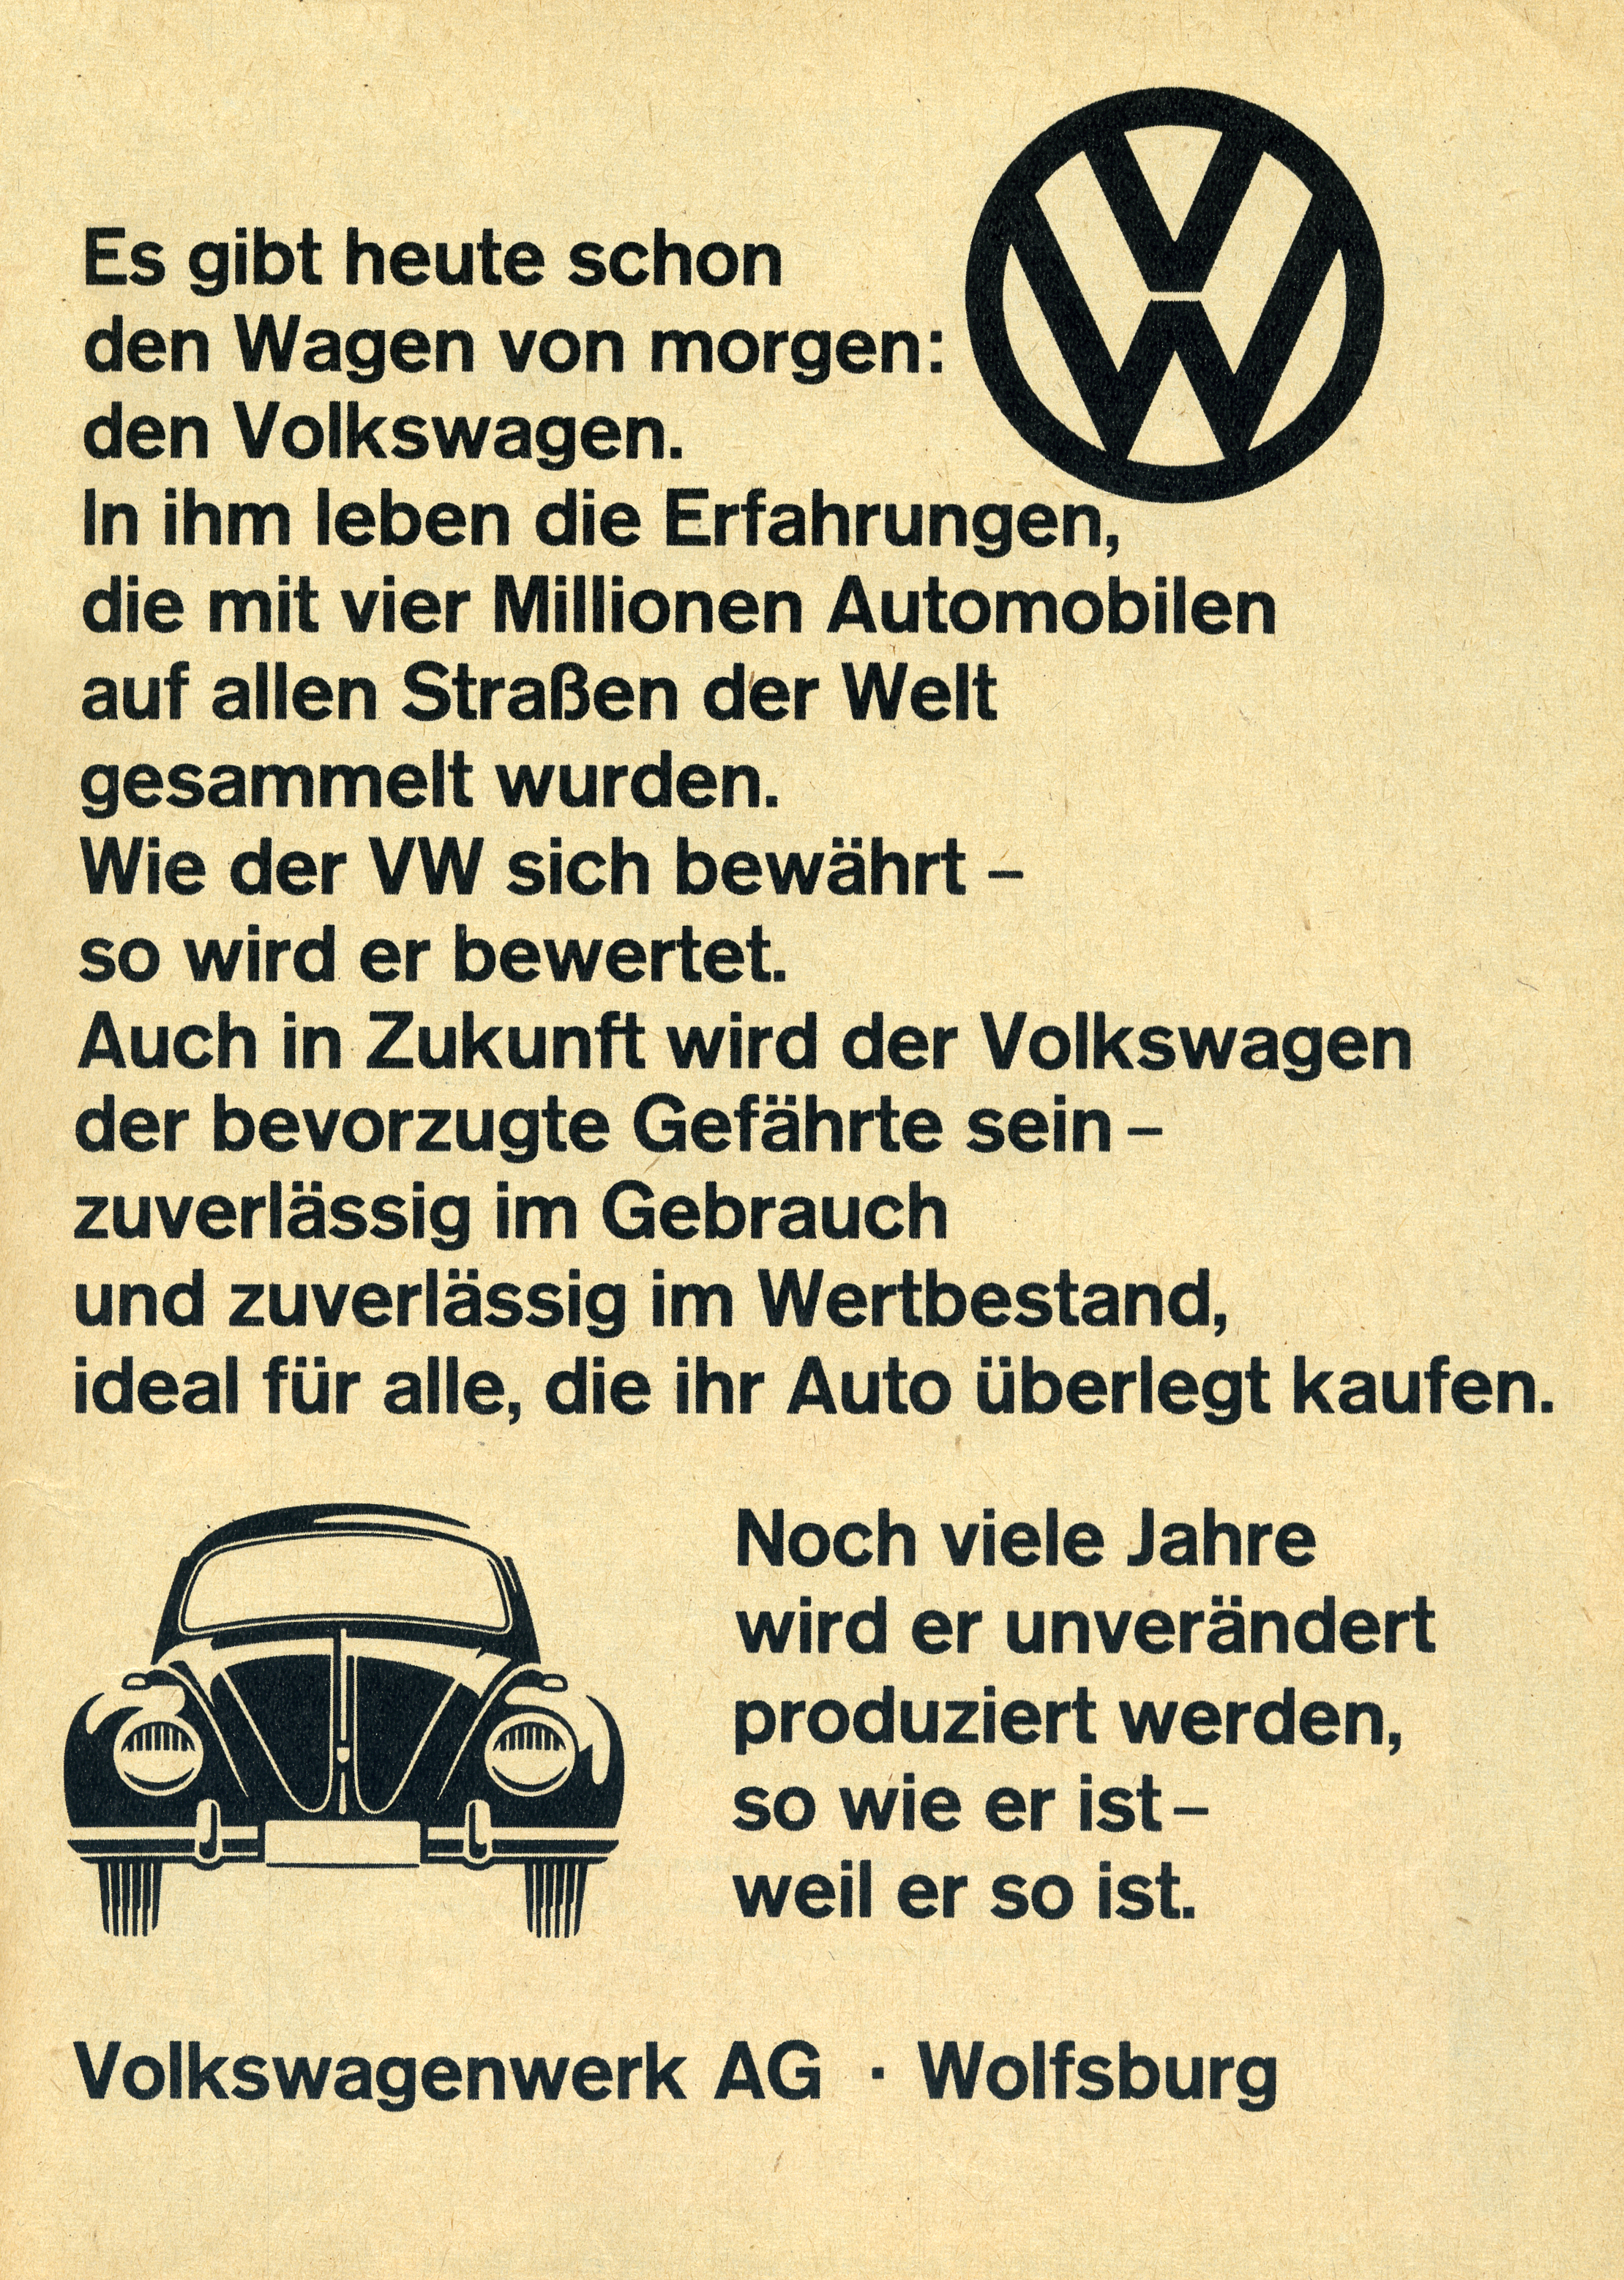 Volkswagen ad (1961) - Fonts In Use